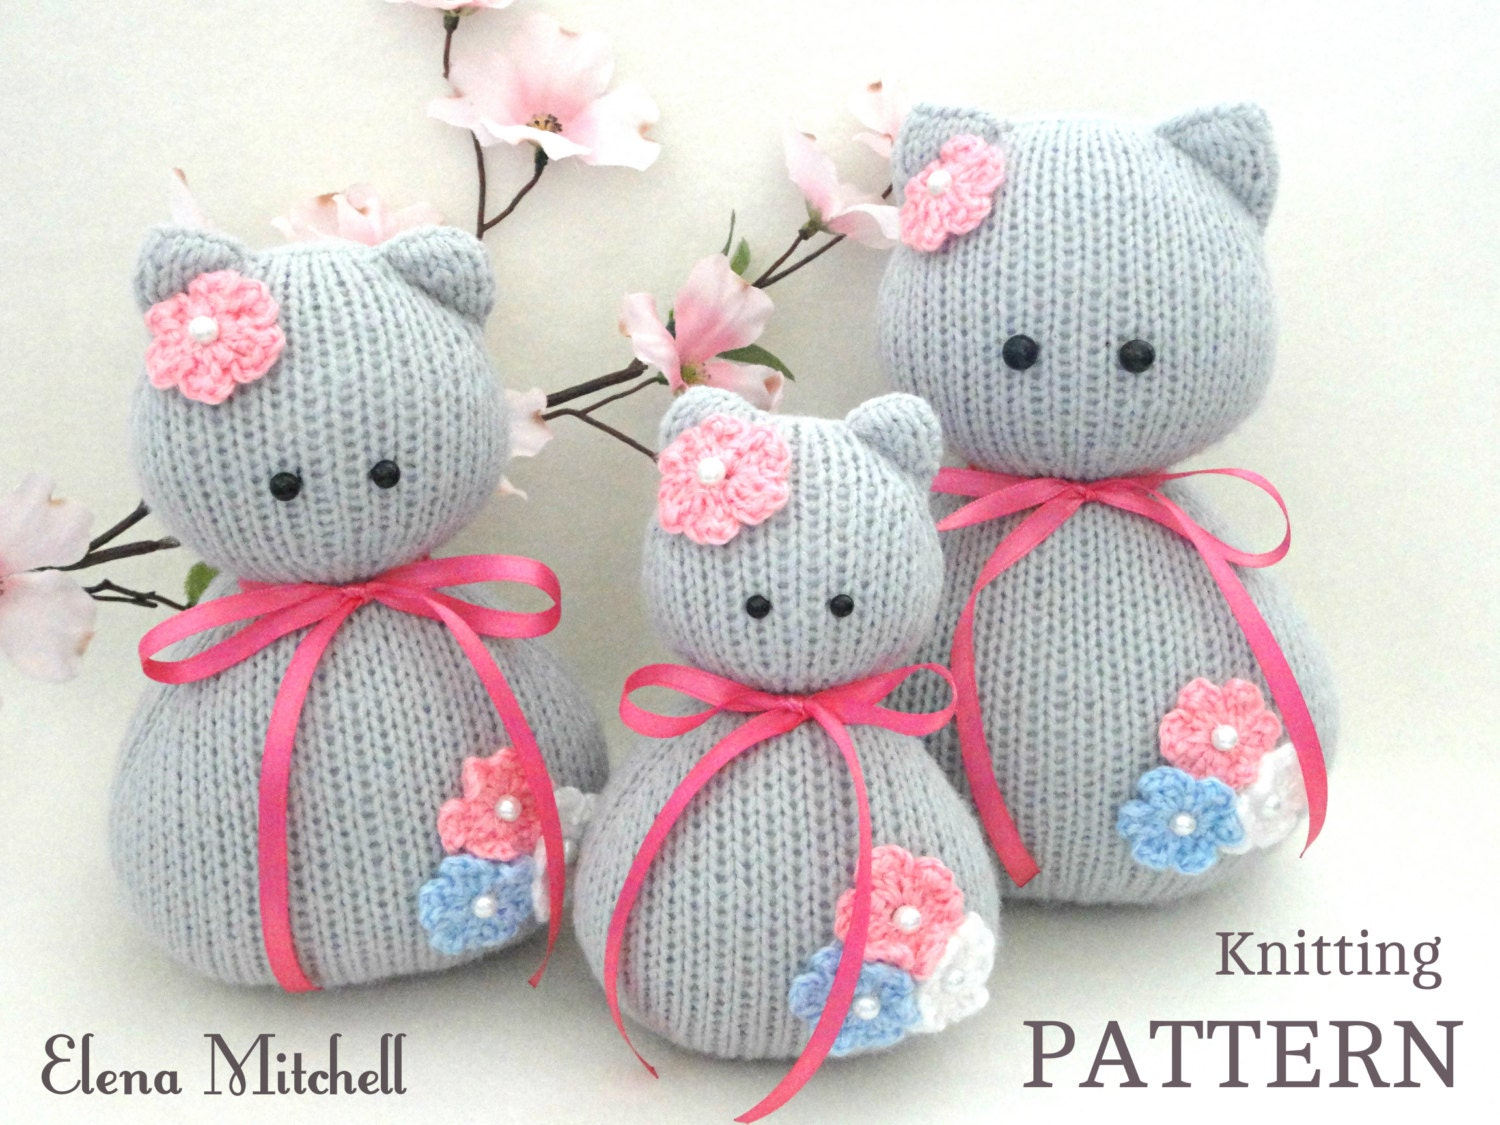 Knitting Patterns Toys : Knitting PATTERN Animal Knit Pattern Cat Animal Patterns Children Toy Knittin...